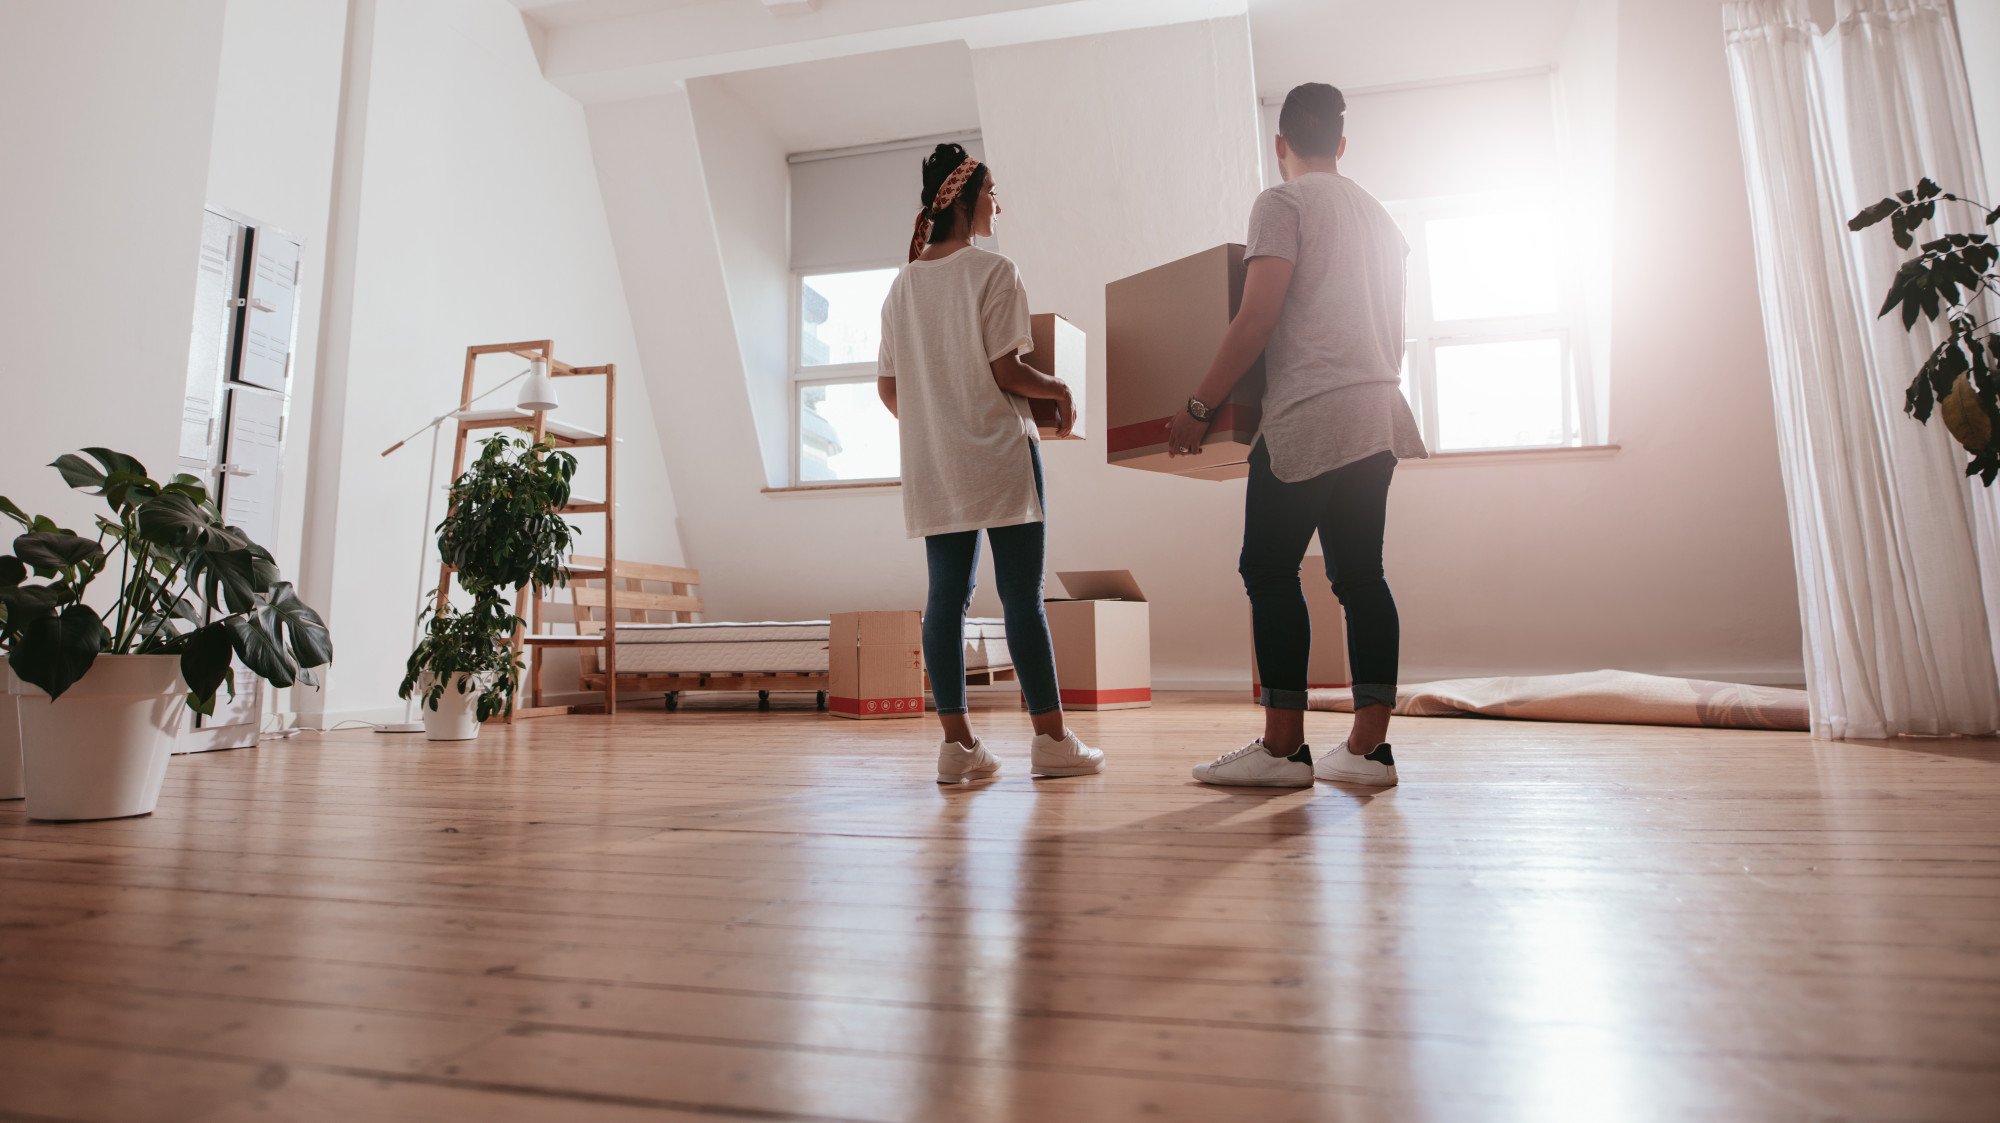 How to Move Out of an Apartment: The Essential Things to Do